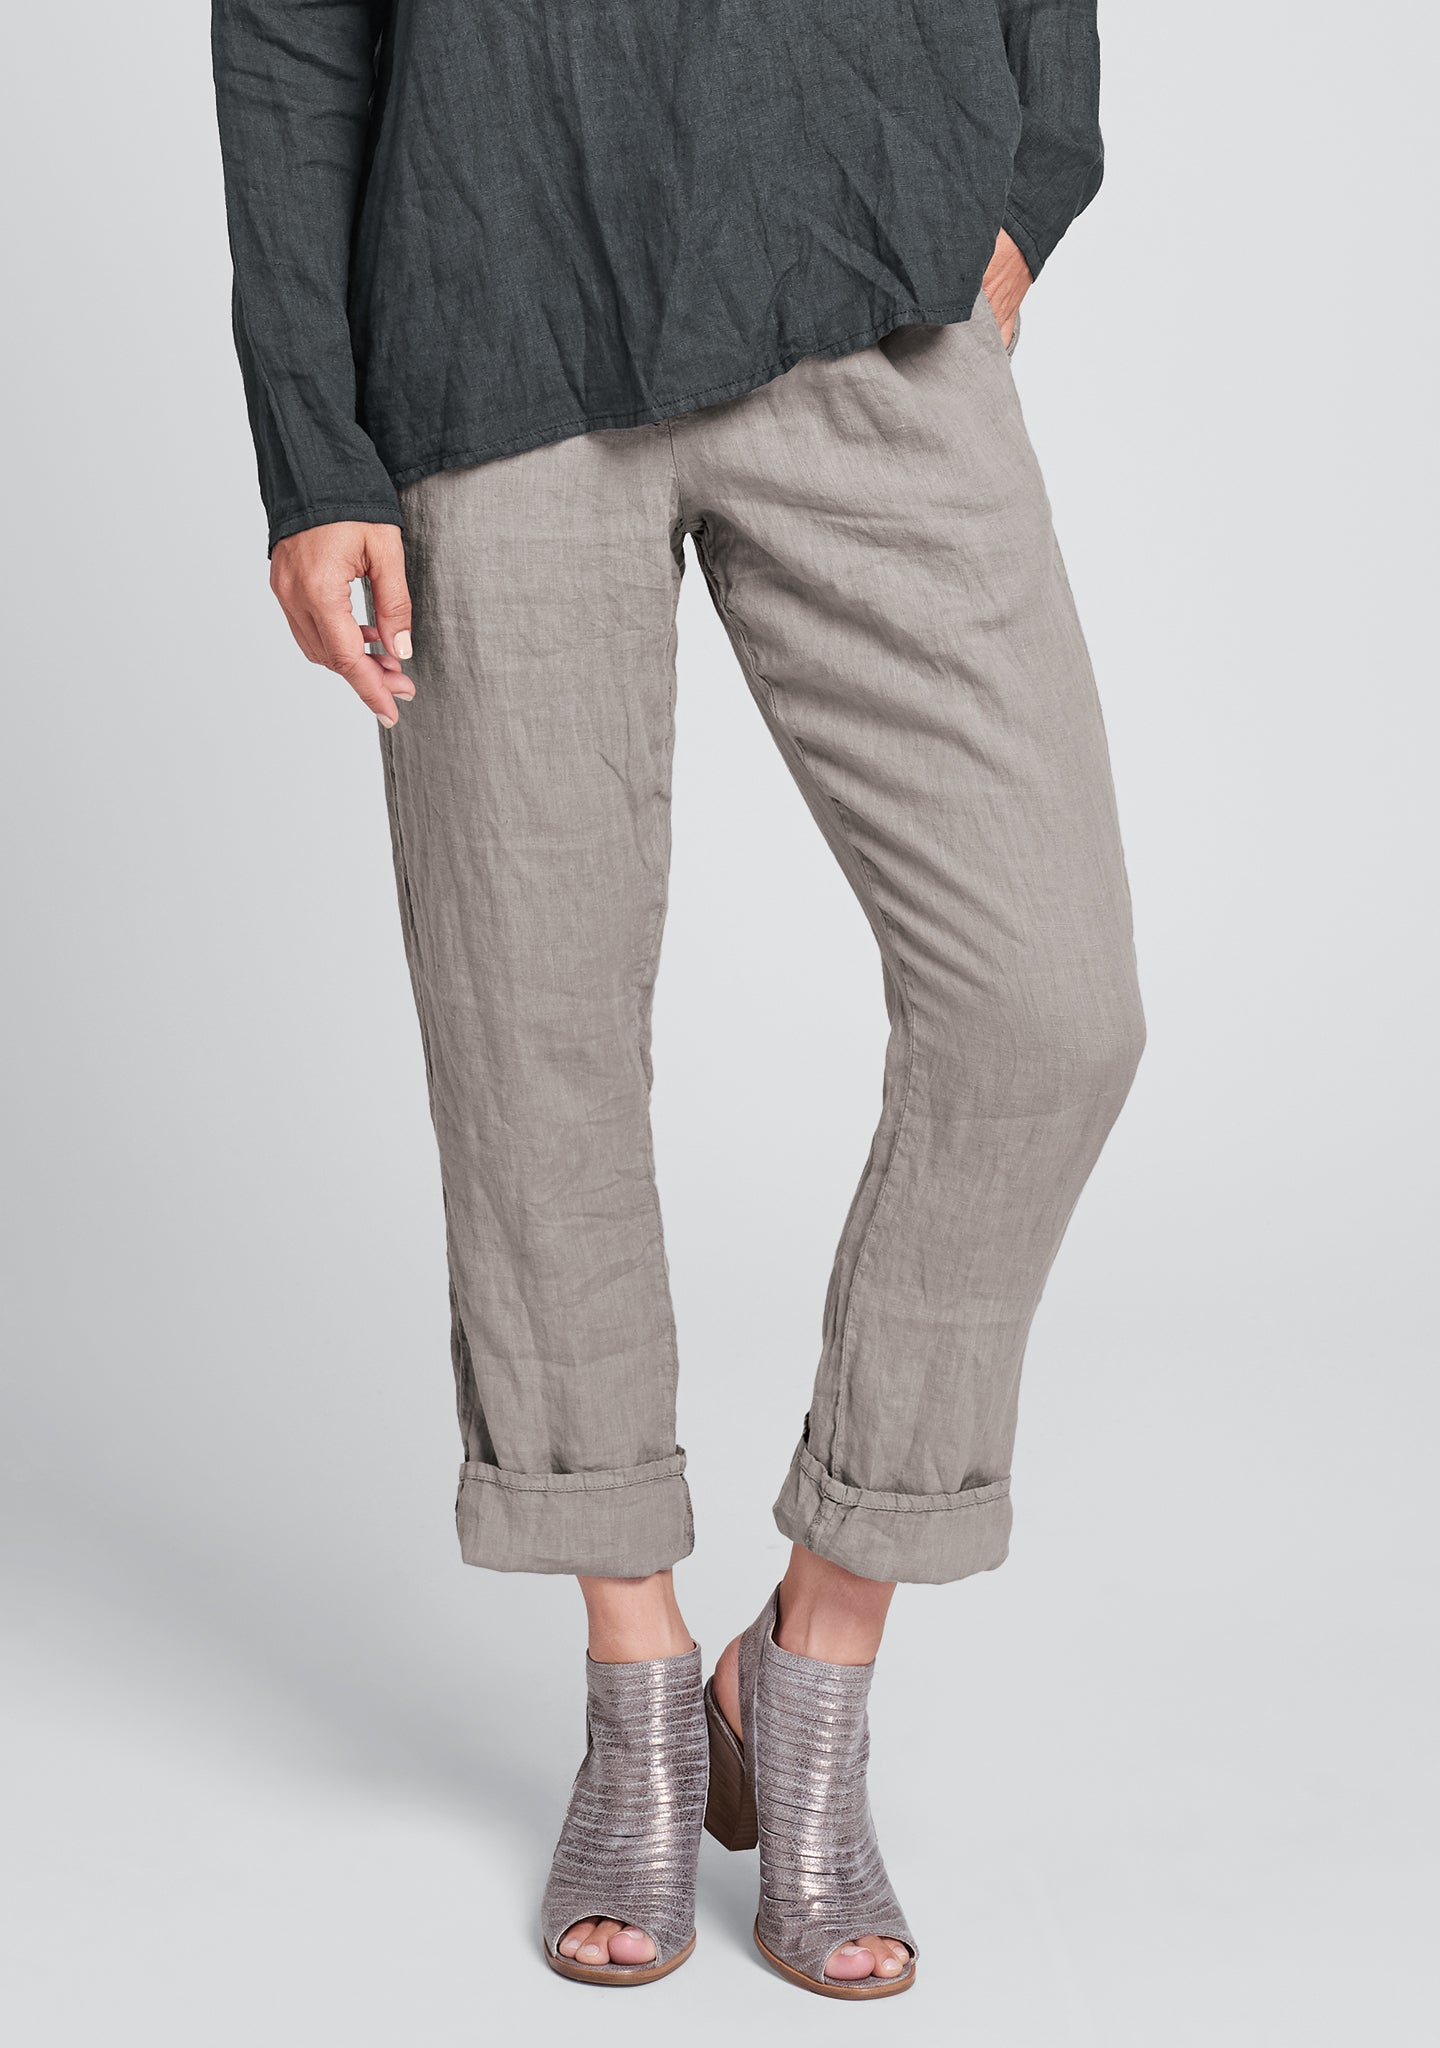 urban slims linen drawstring pants natural